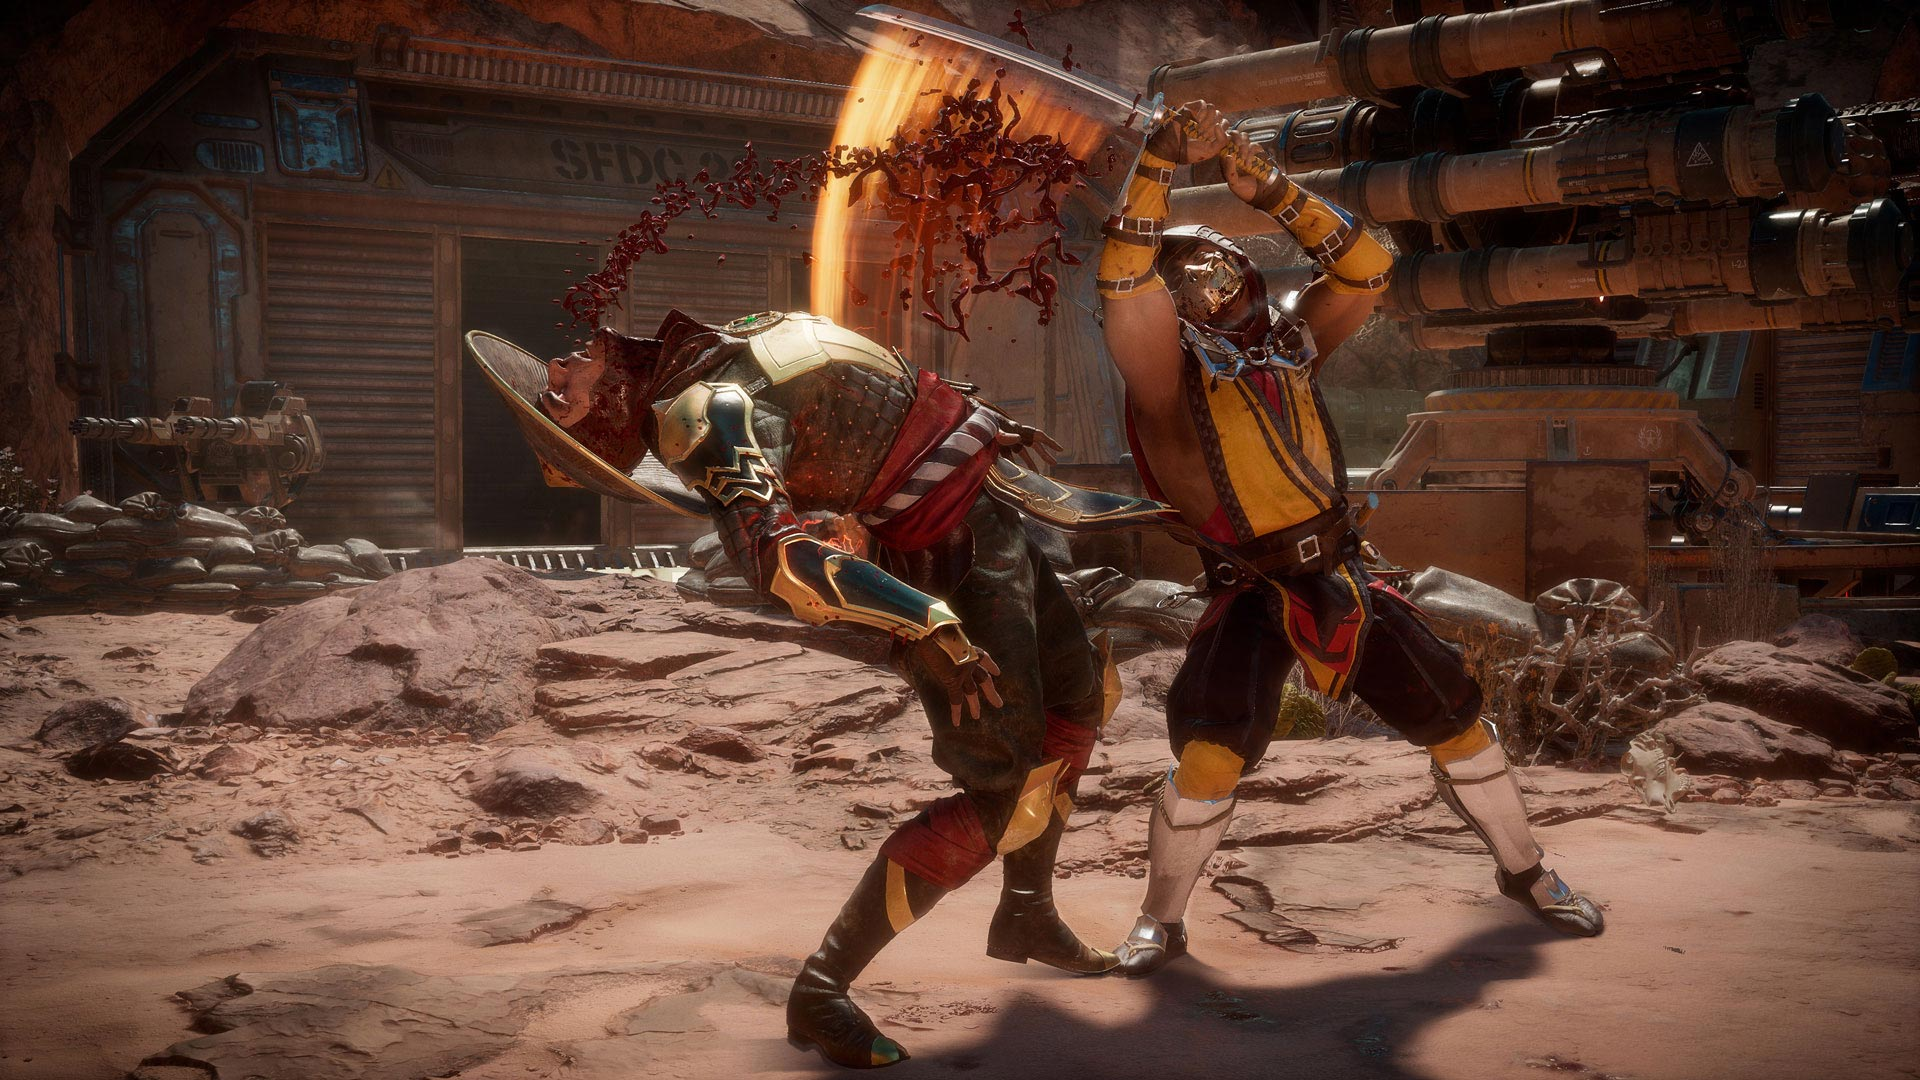 Watch the Entire Mortal Kombat 11 Opening Cinematic Here